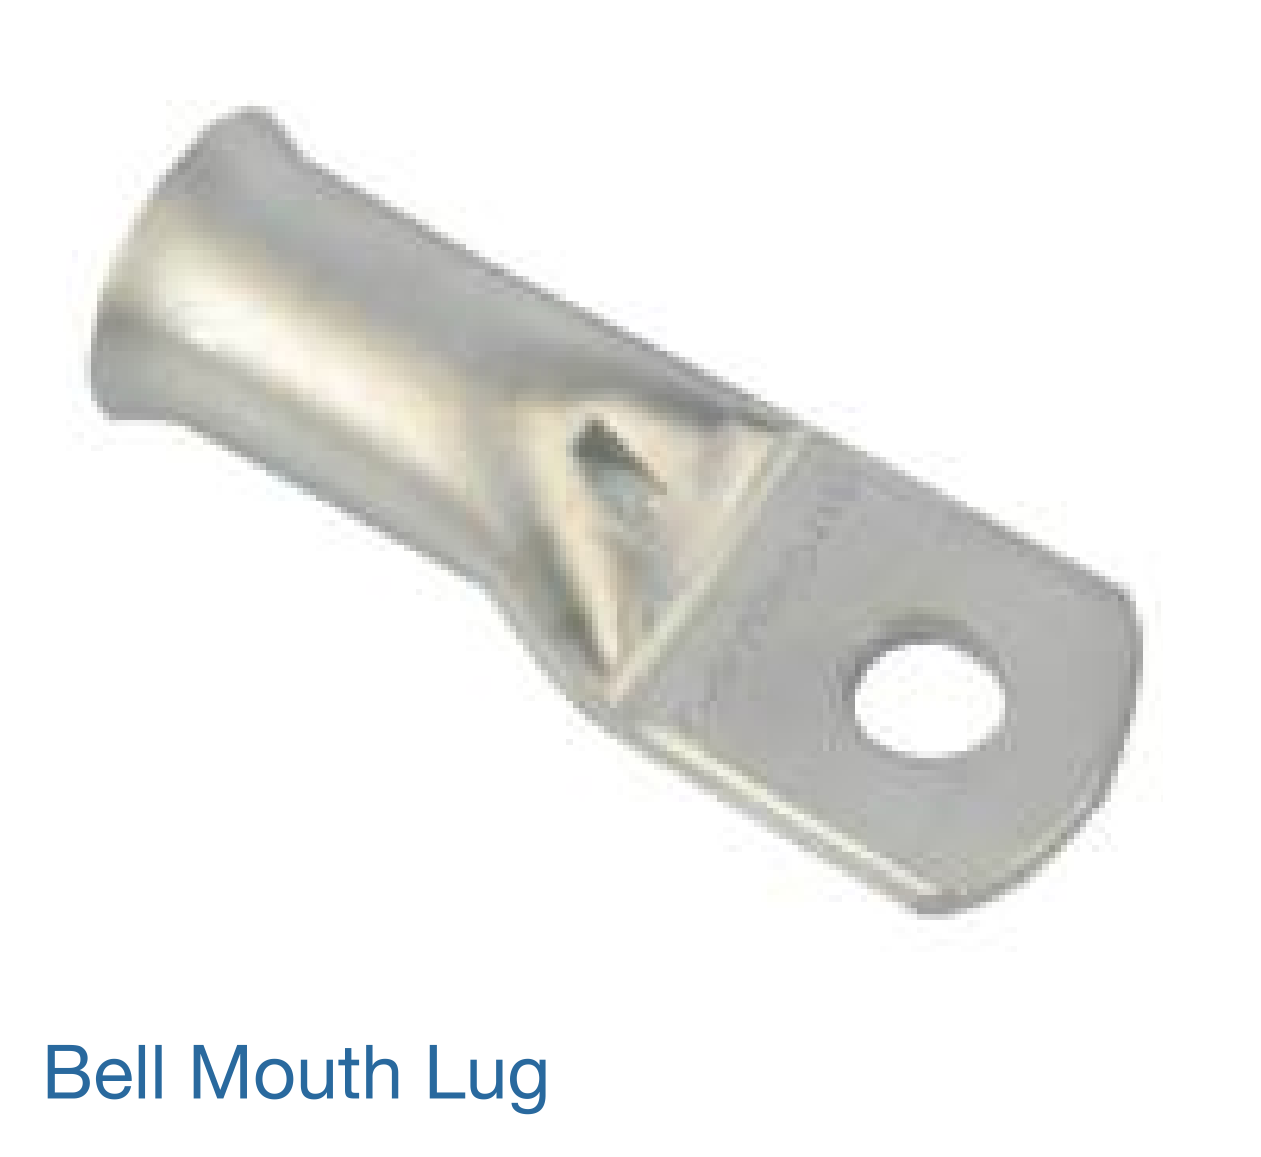 BELL MOUTH LUG